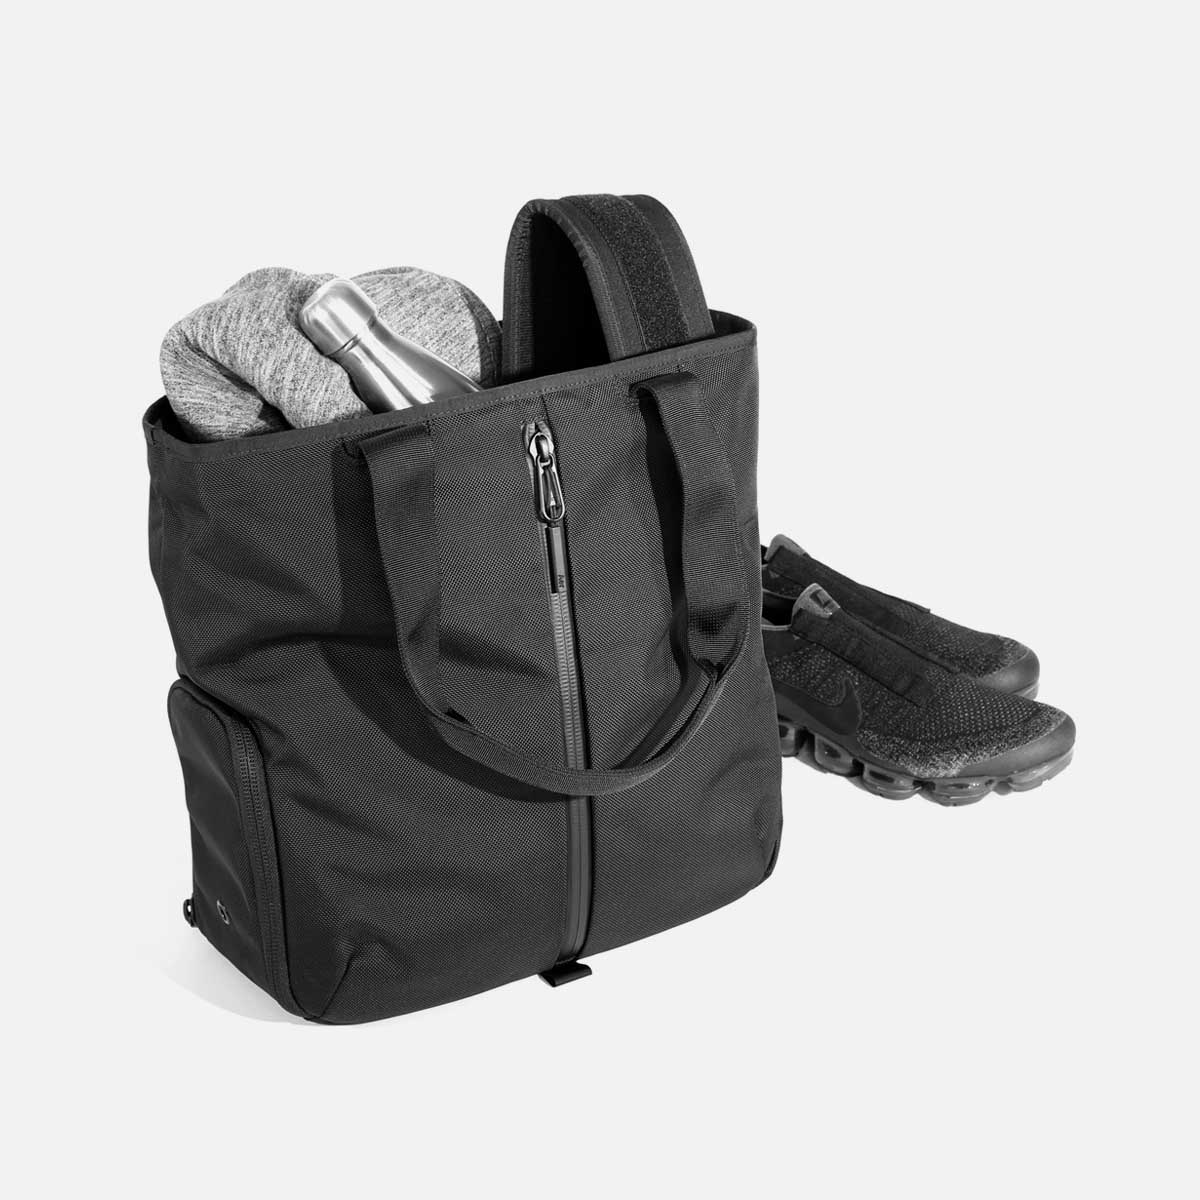 11008_gymtote_black_gear.jpg